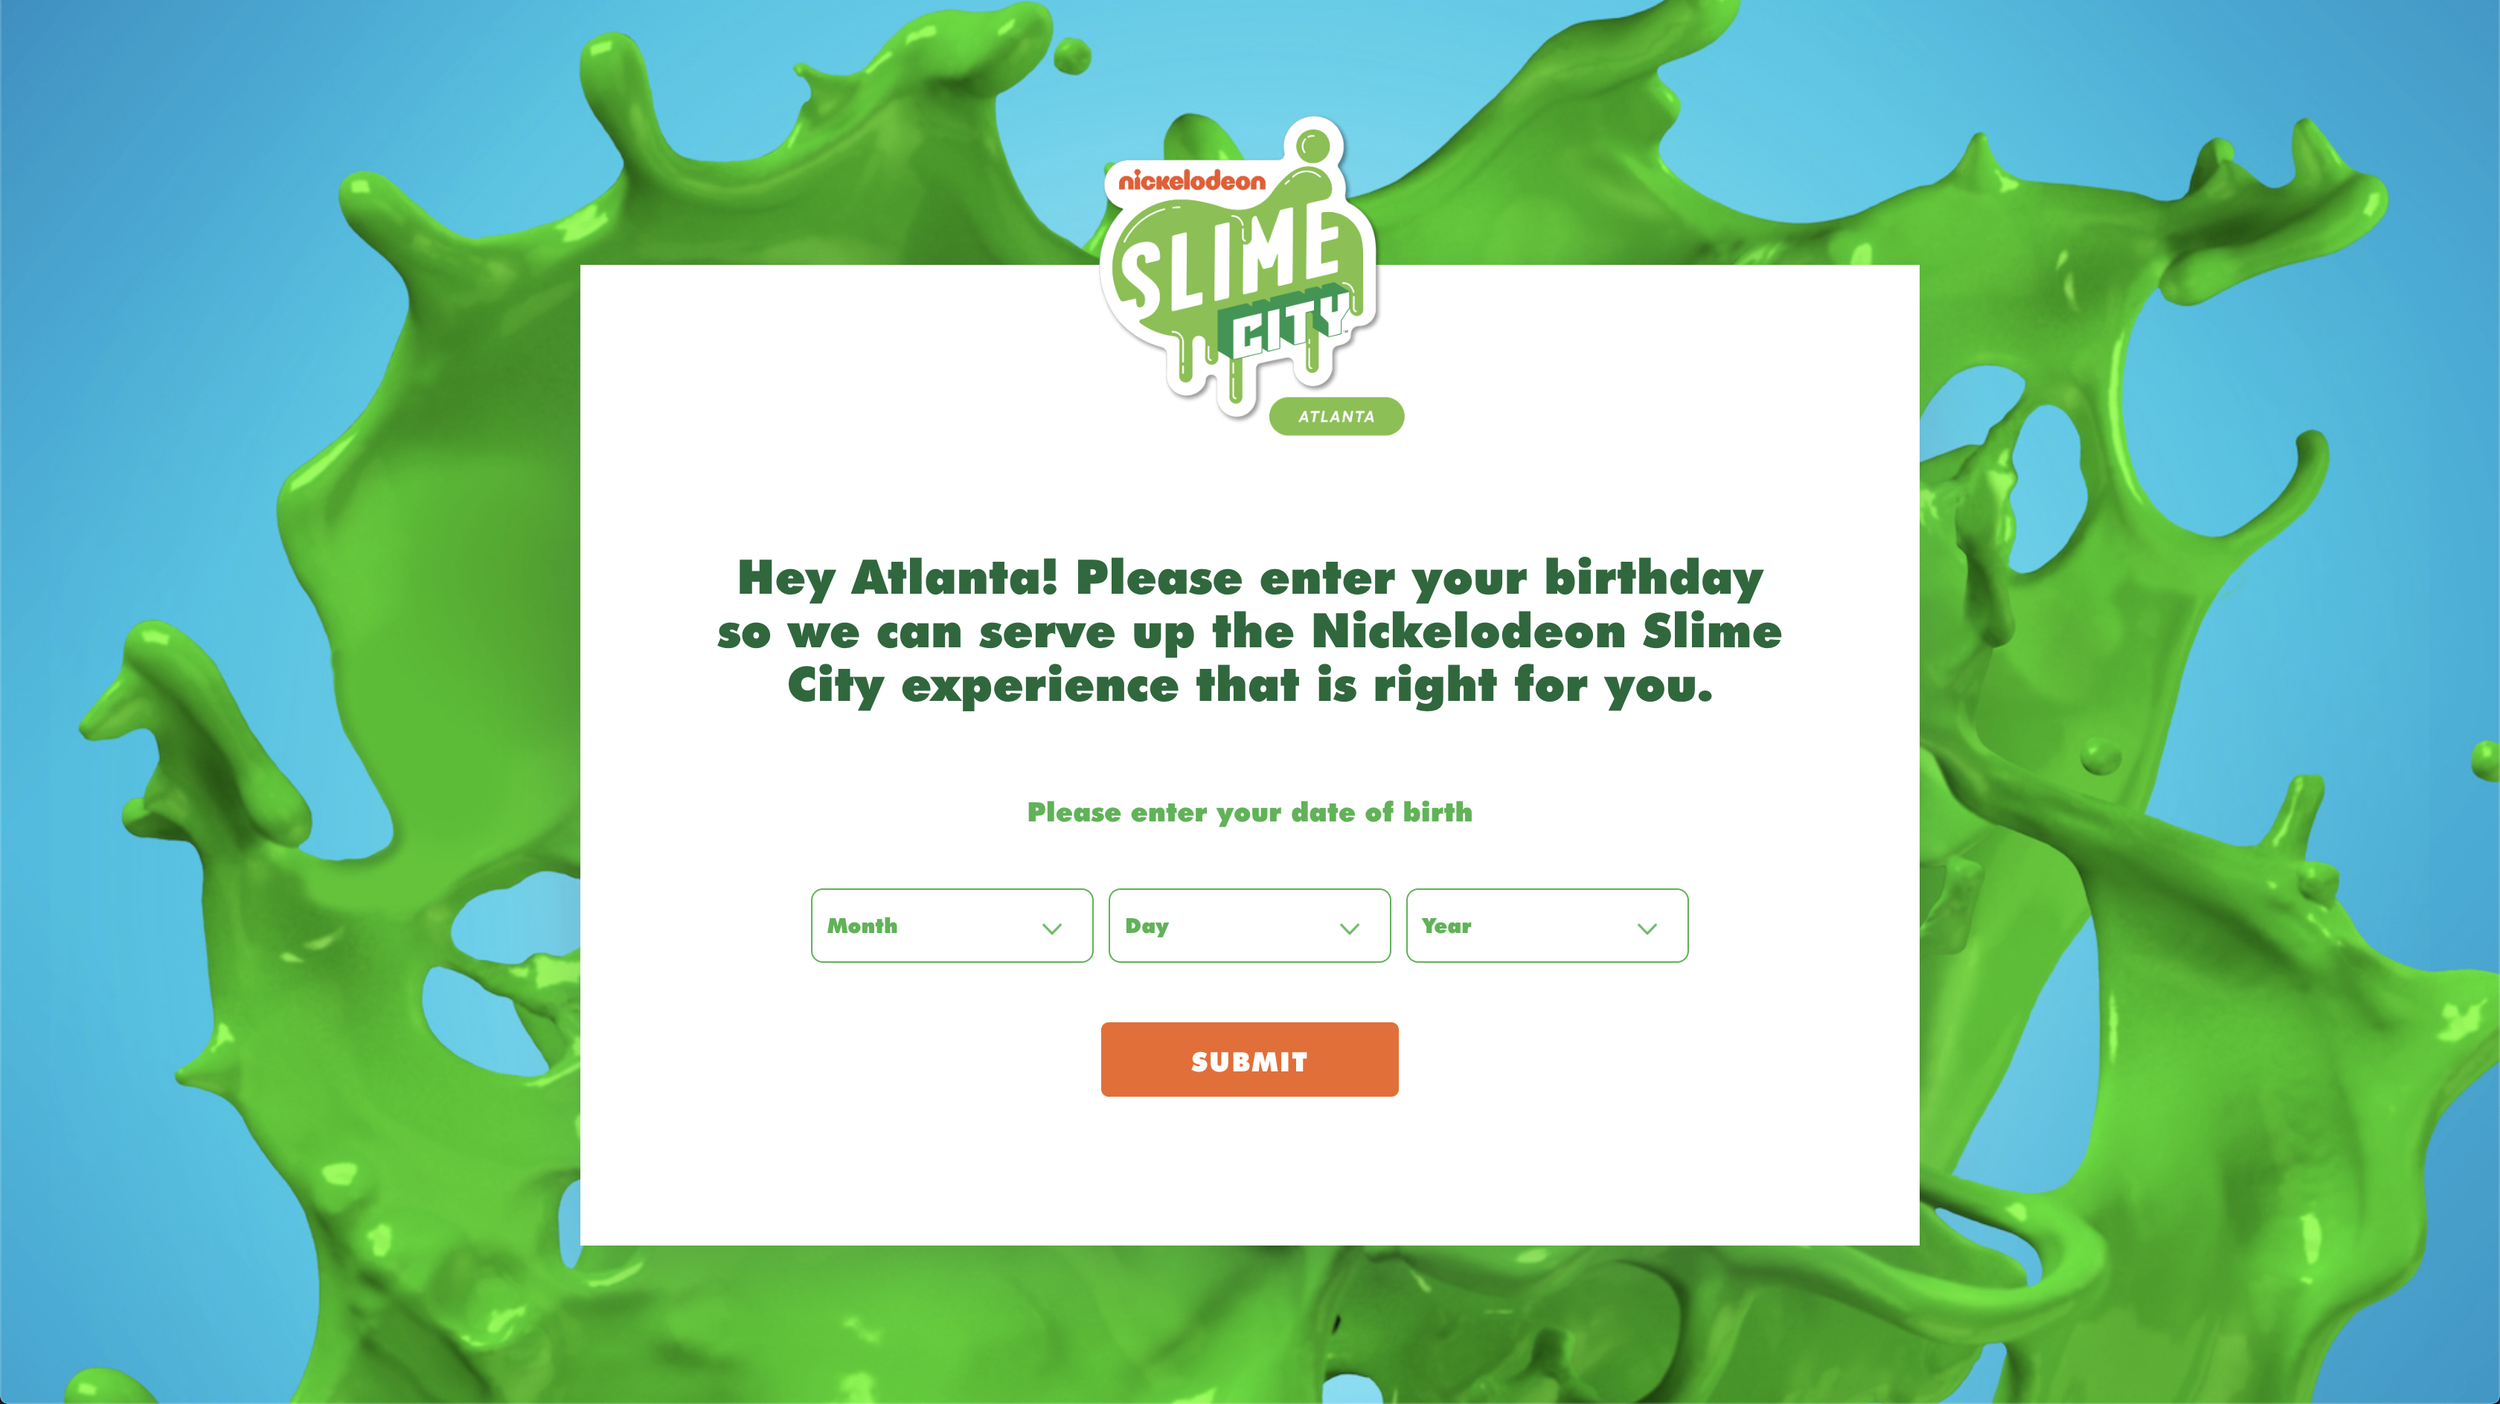 Nick-Slime-City1.png